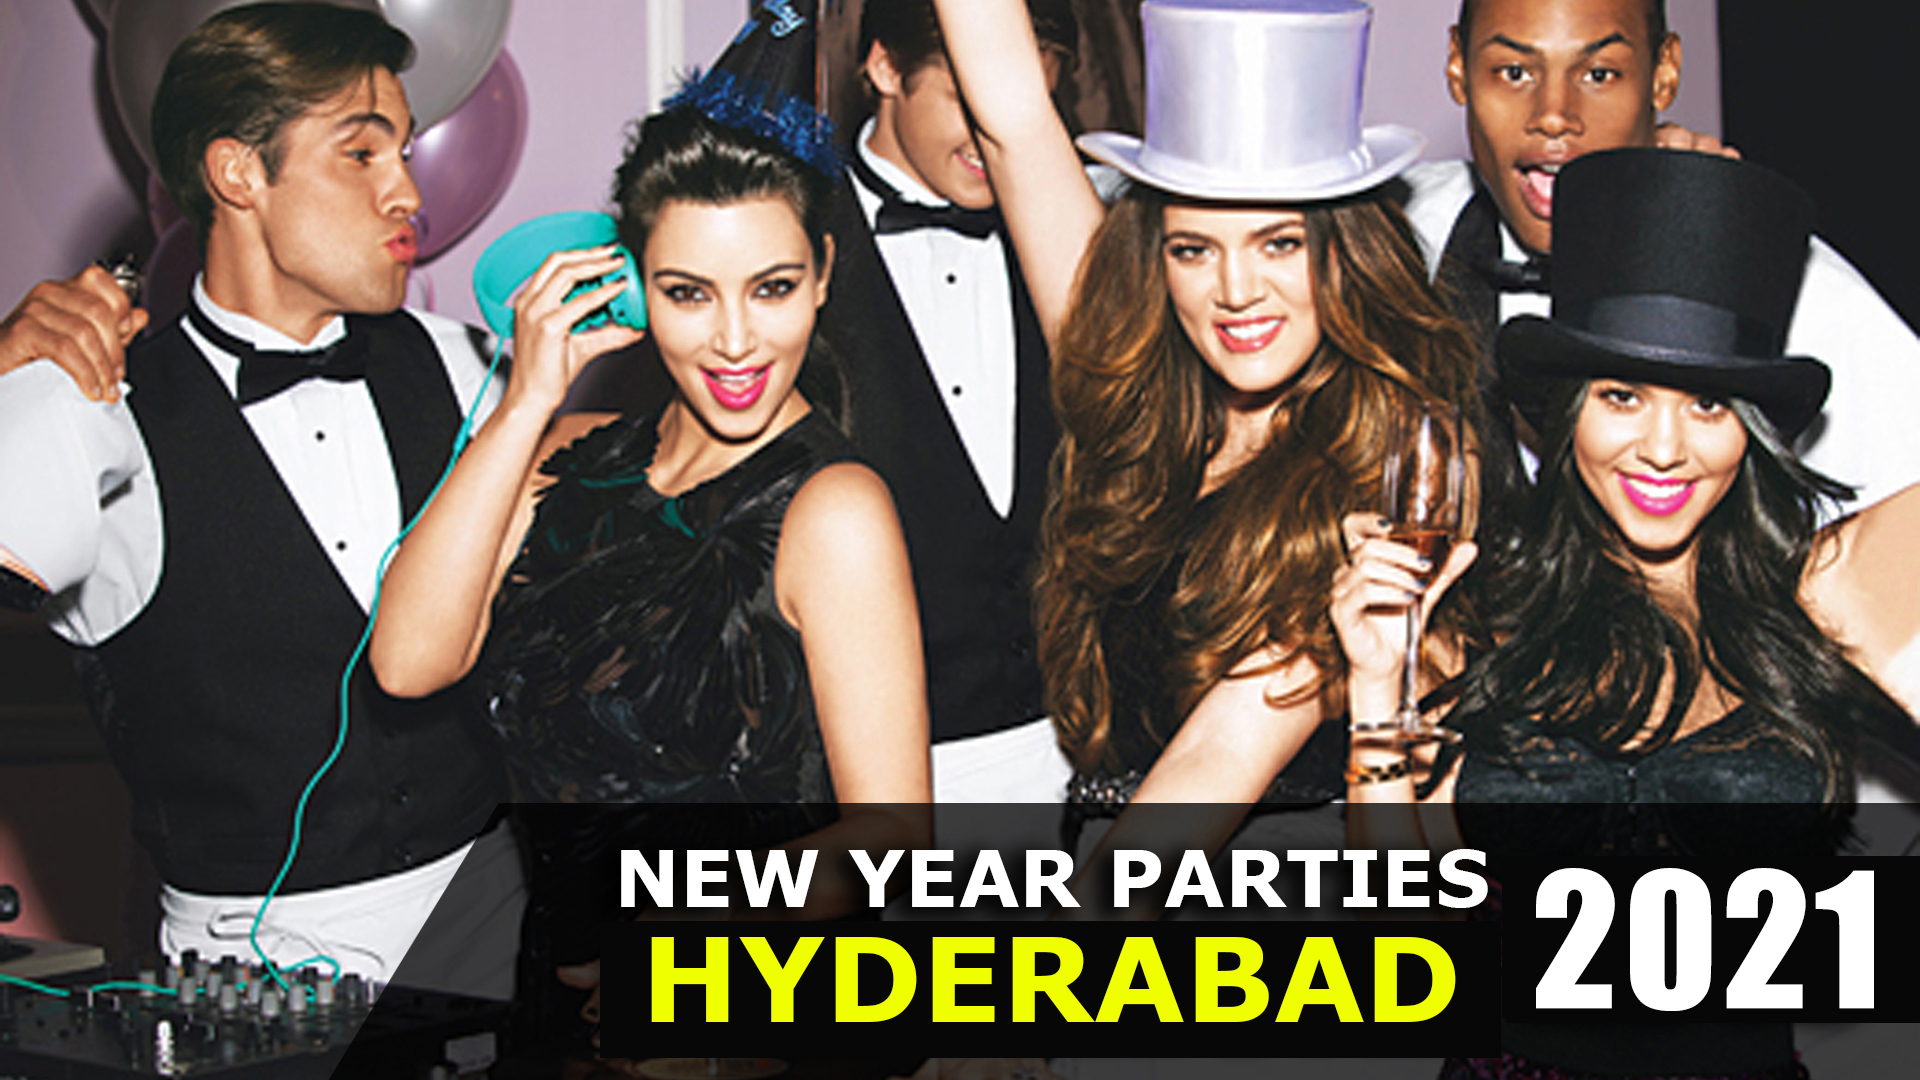 0 Handpicked New Year Events & Parties 2021 in Hyderabad - HighApe